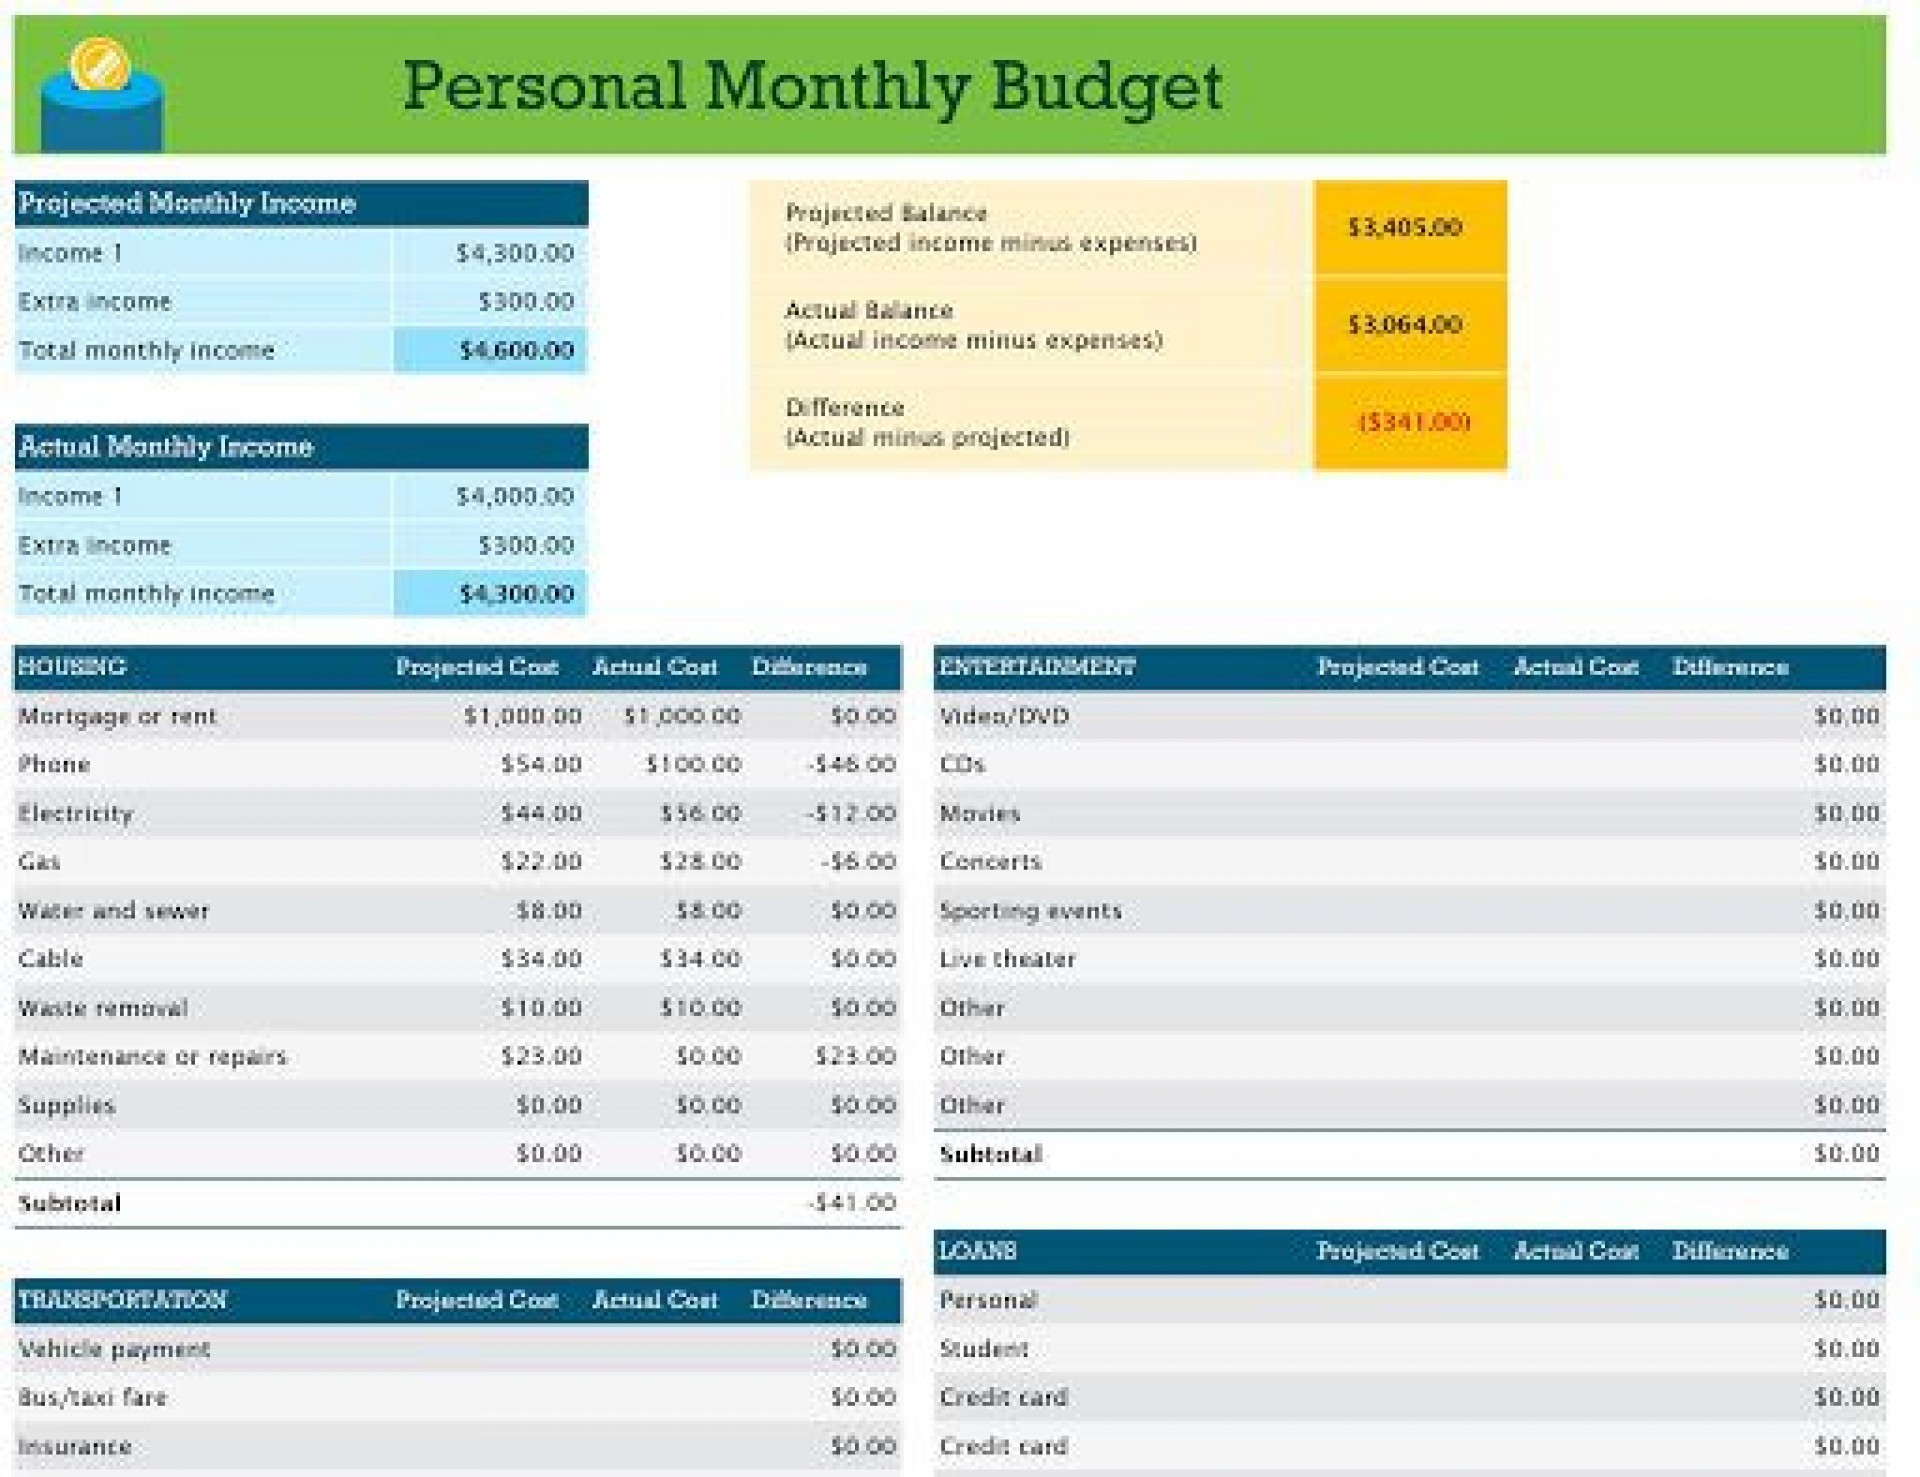 007 Imposing Personal Budget Template Excel Design  Spreadsheet Simple South Africa1920